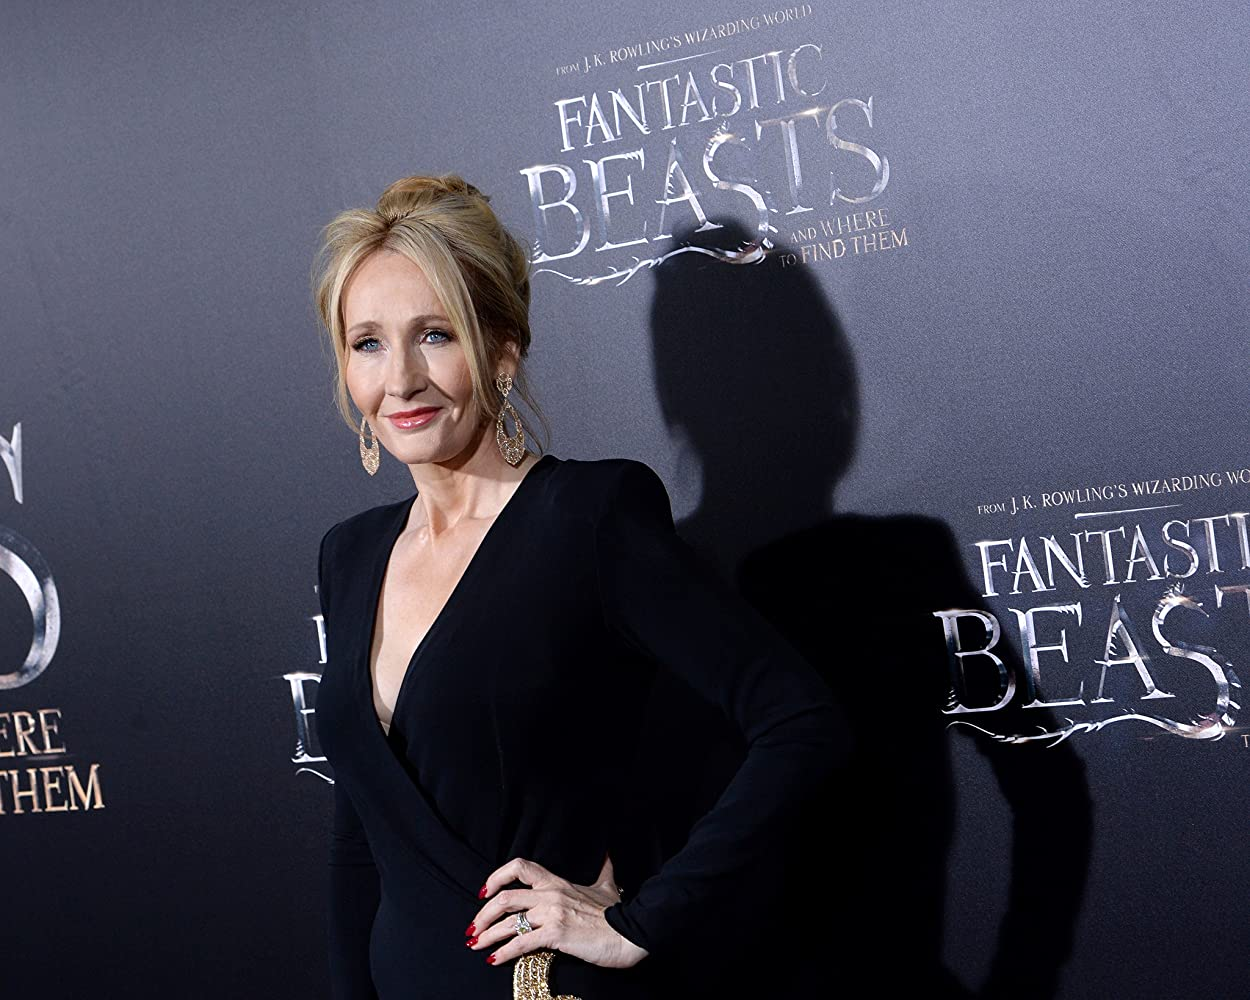 J.K. Rowling at an event for Fantastic Beasts and Where to Find Them (2016)